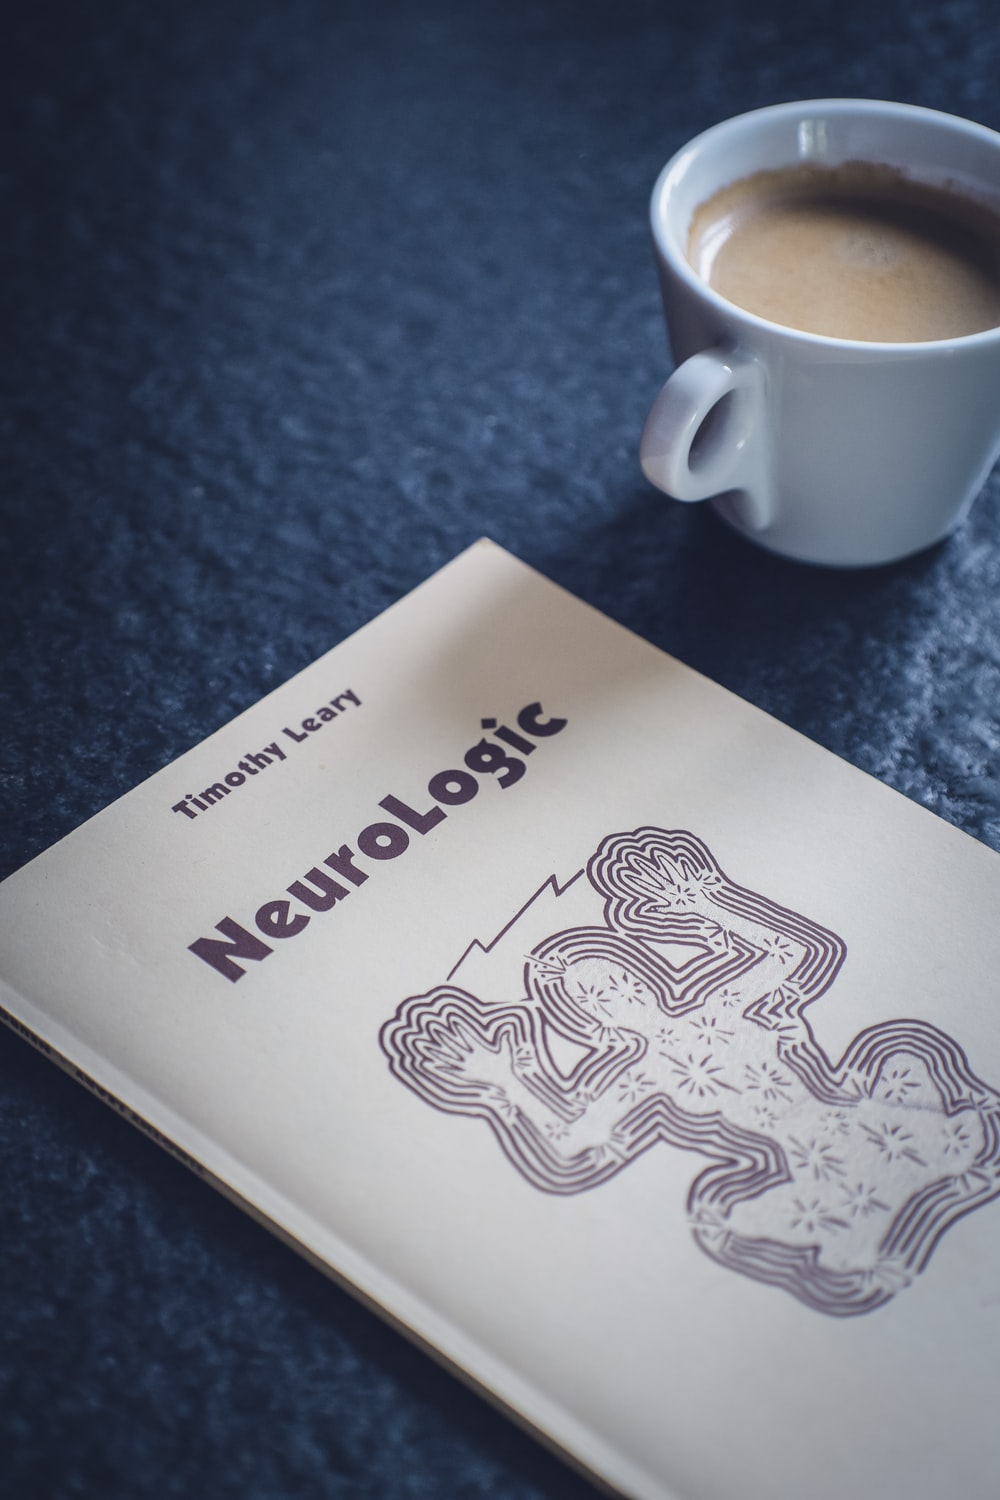 NeuroLogic book